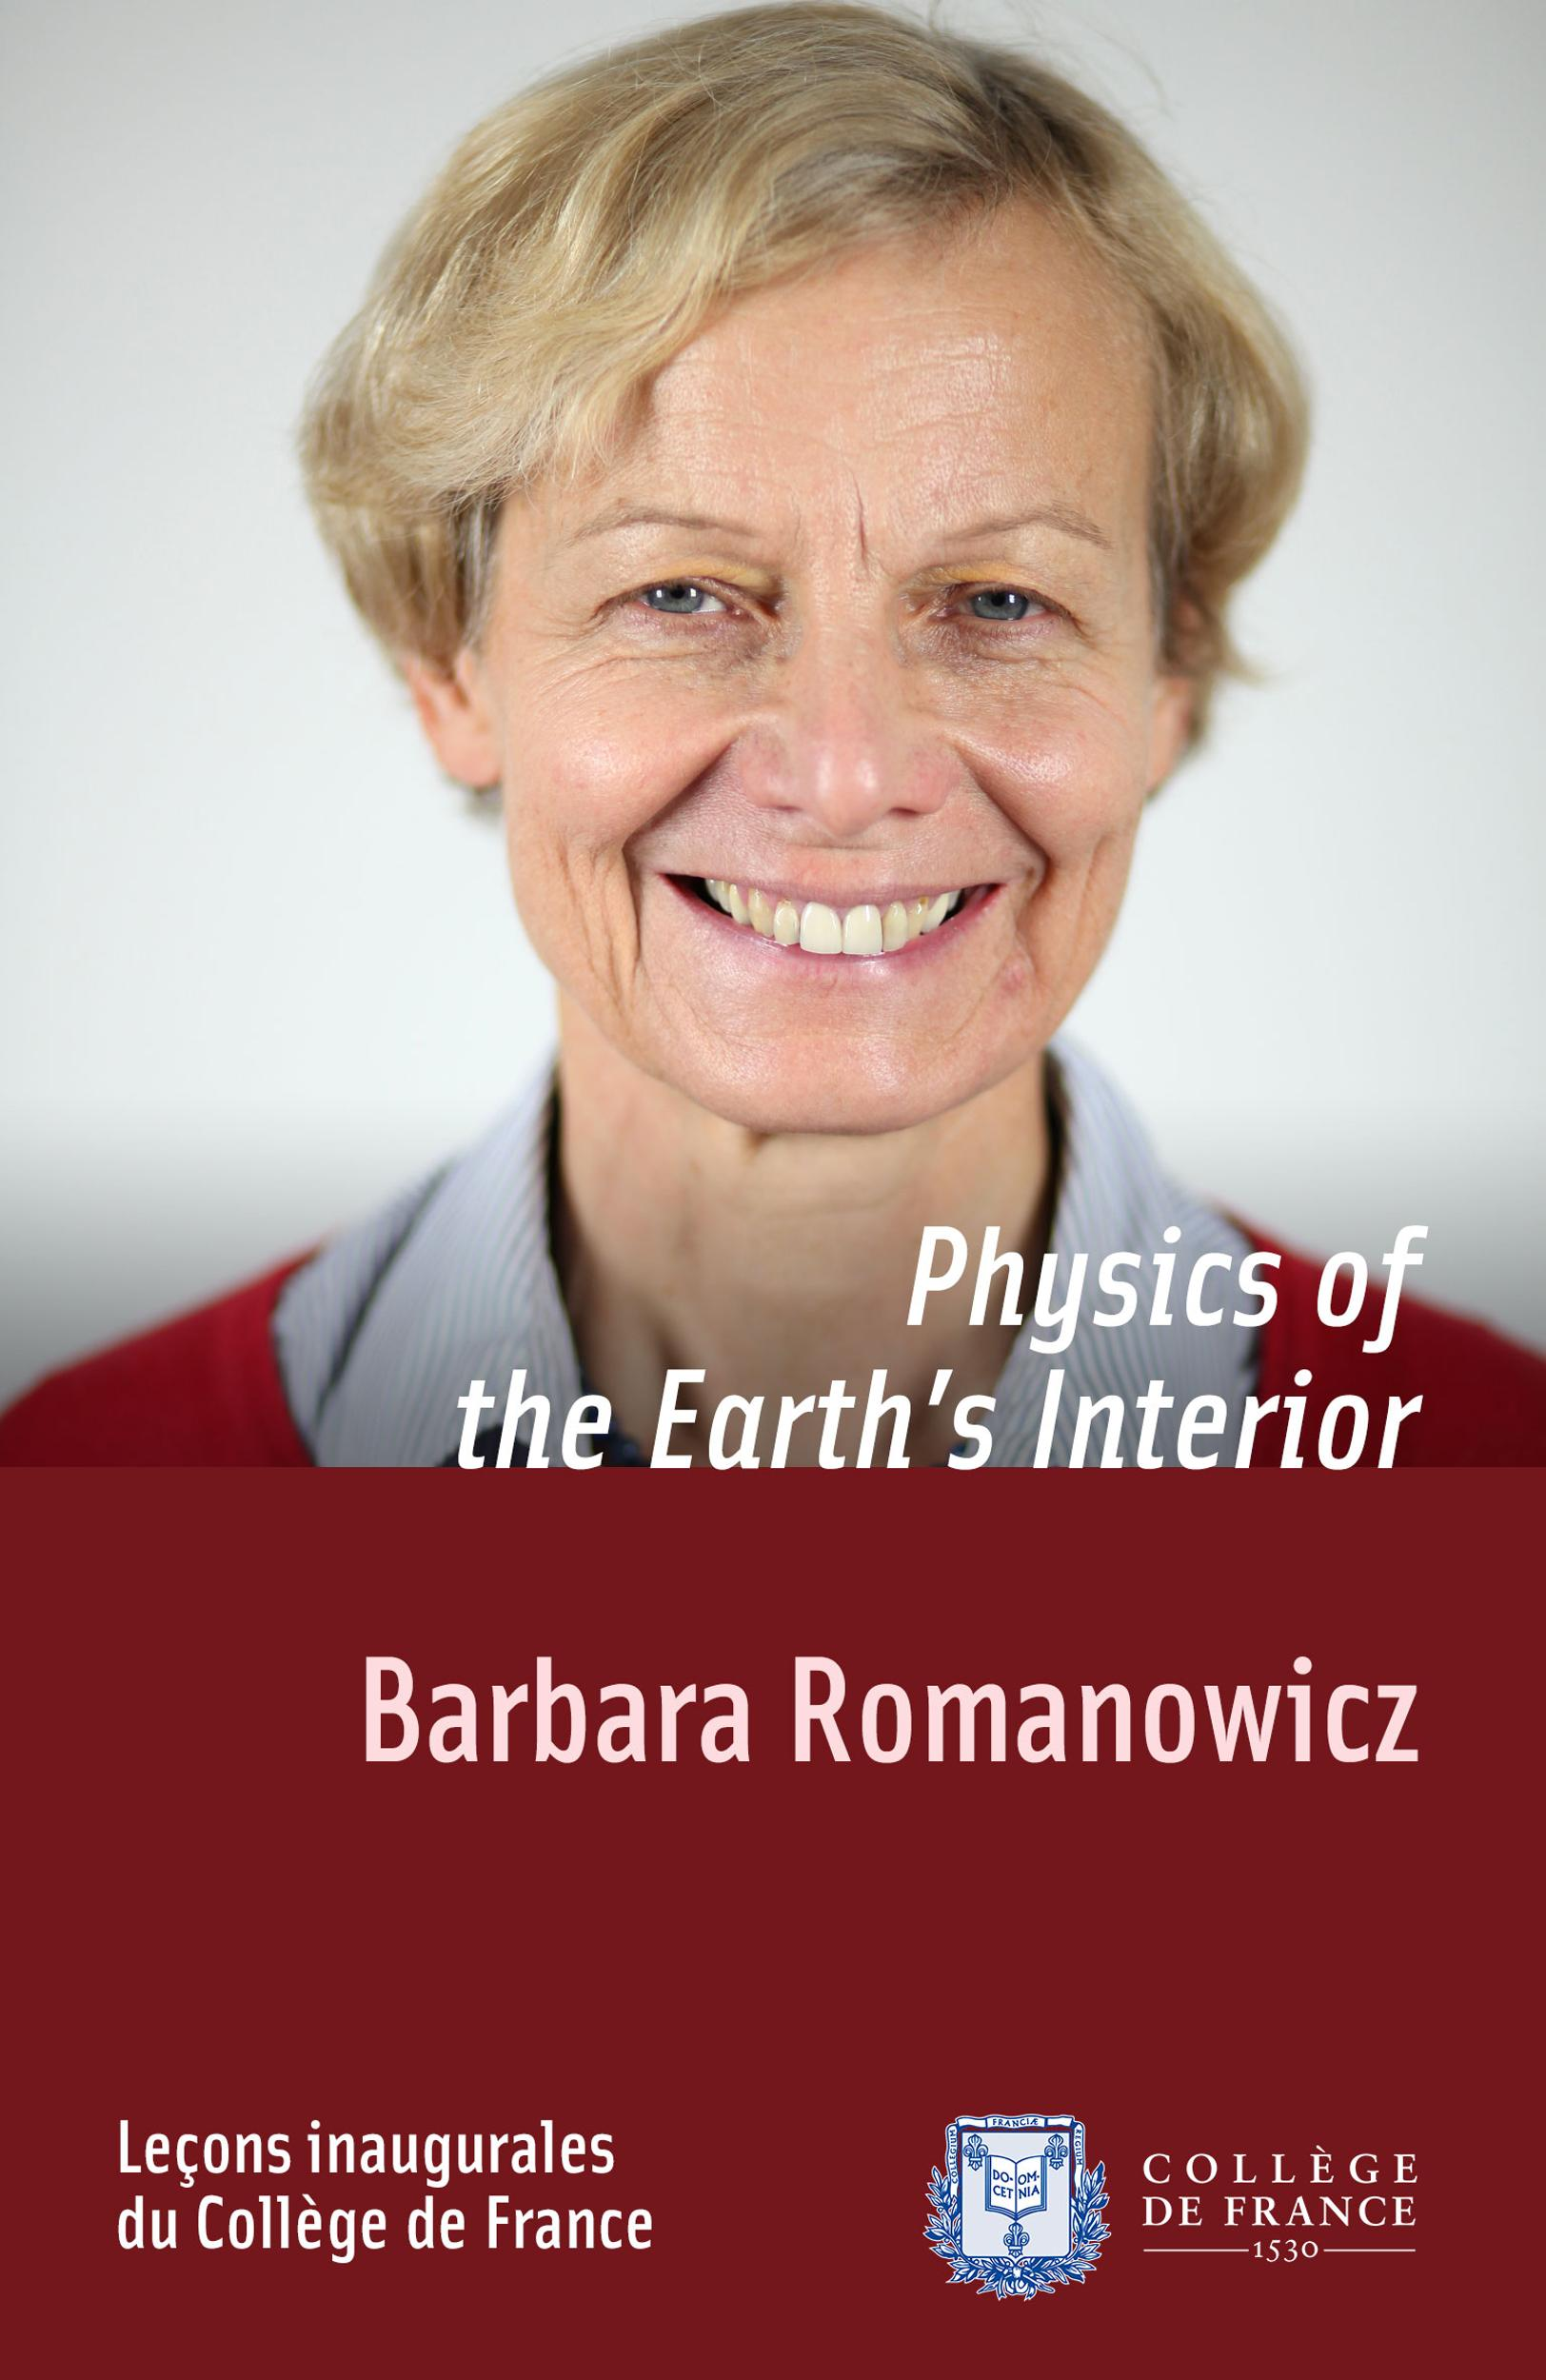 Physics of the Earth's Interior, INAUGURAL LECTURE DELIVERED ON THURSDAY 6 OCTOBER 2011